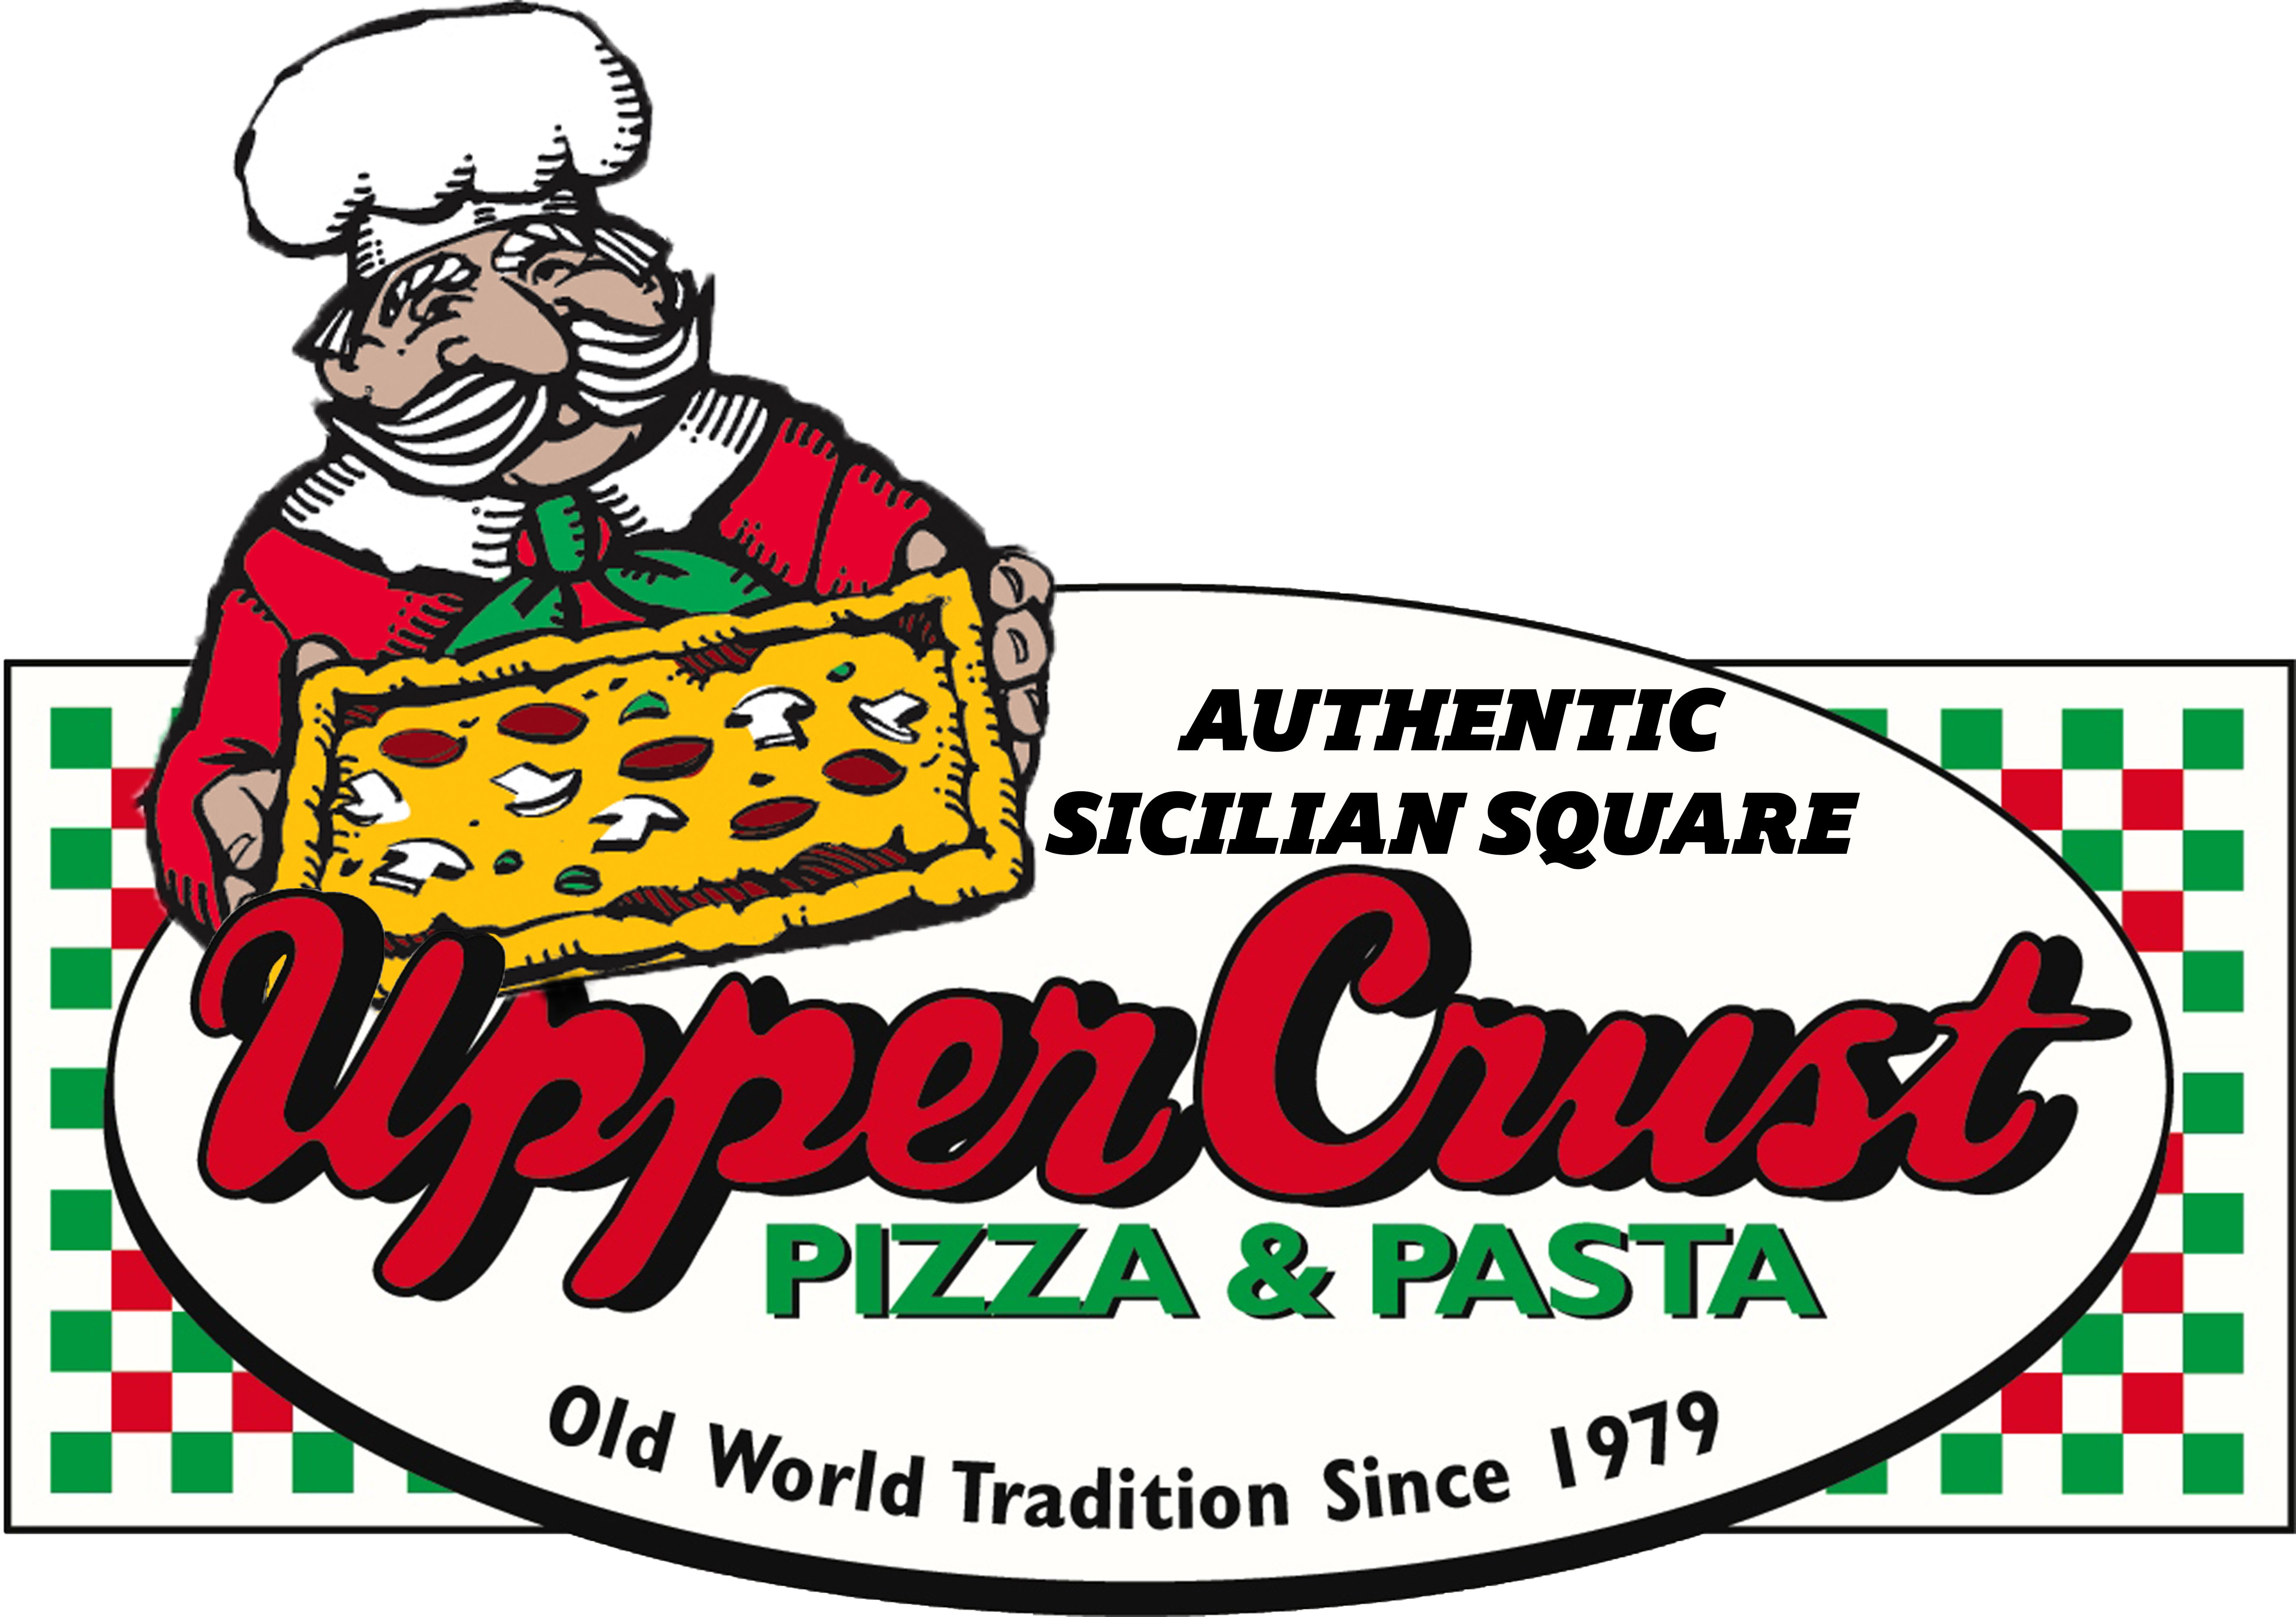 Upper Crust Pizza & Pasta